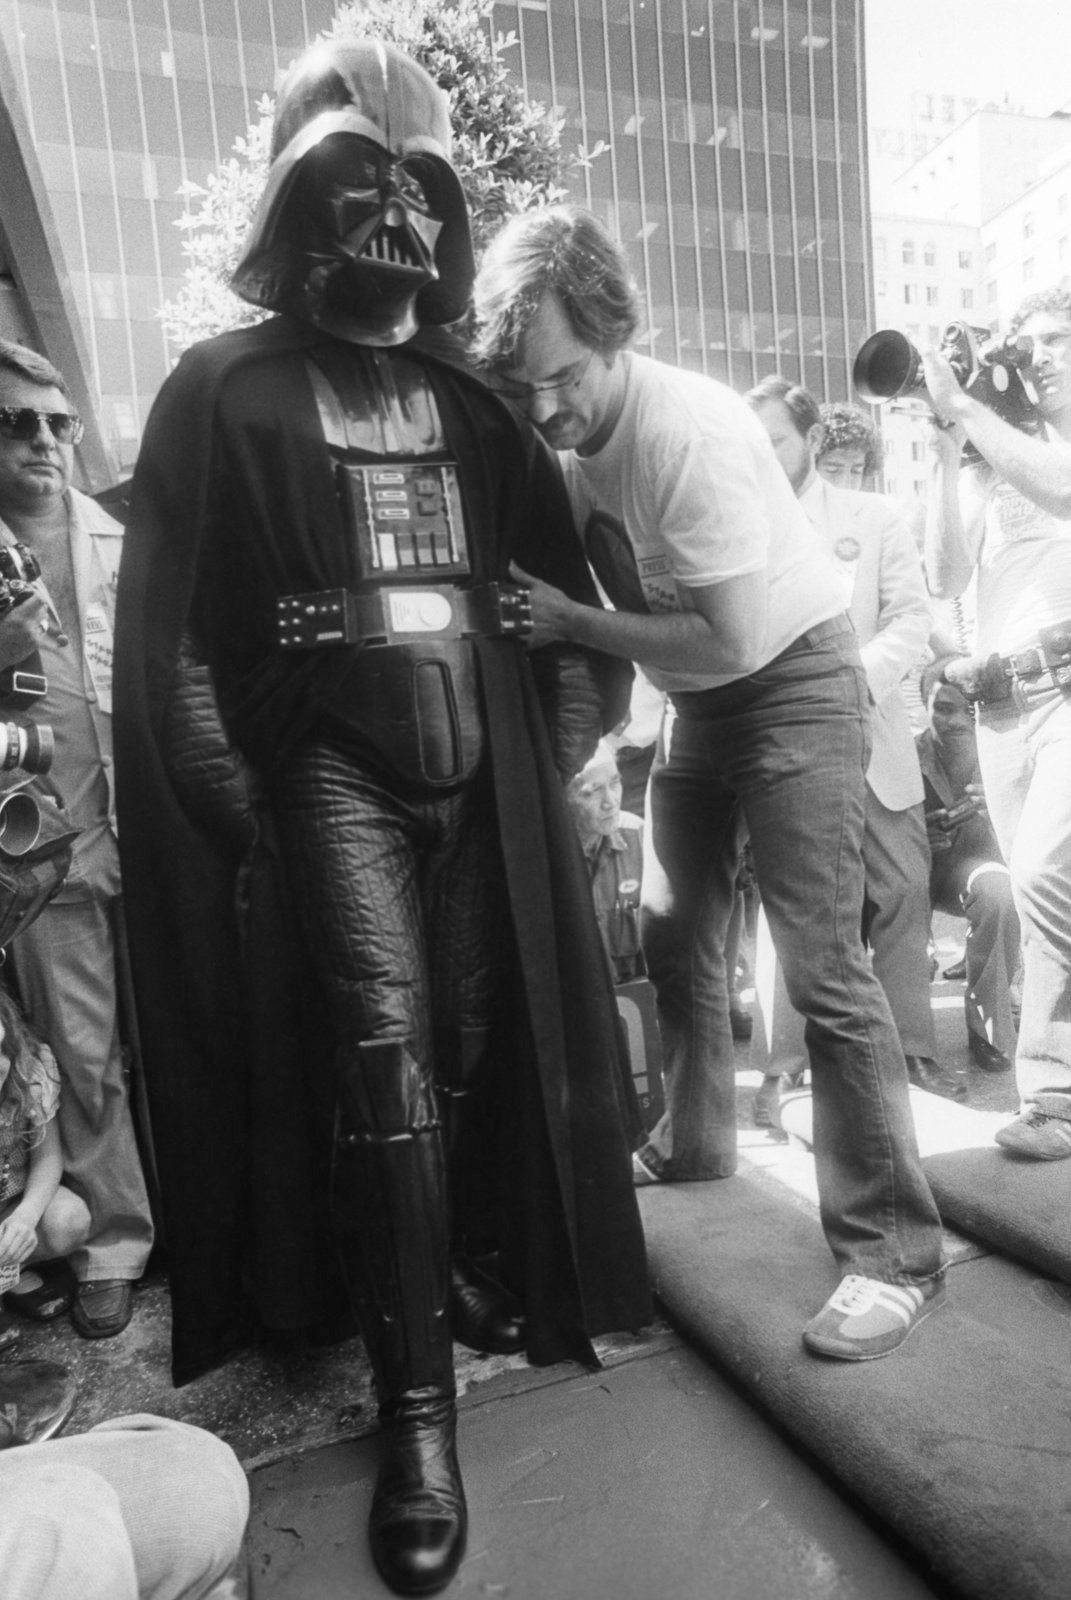 Charley Lippincott and Darth Vader